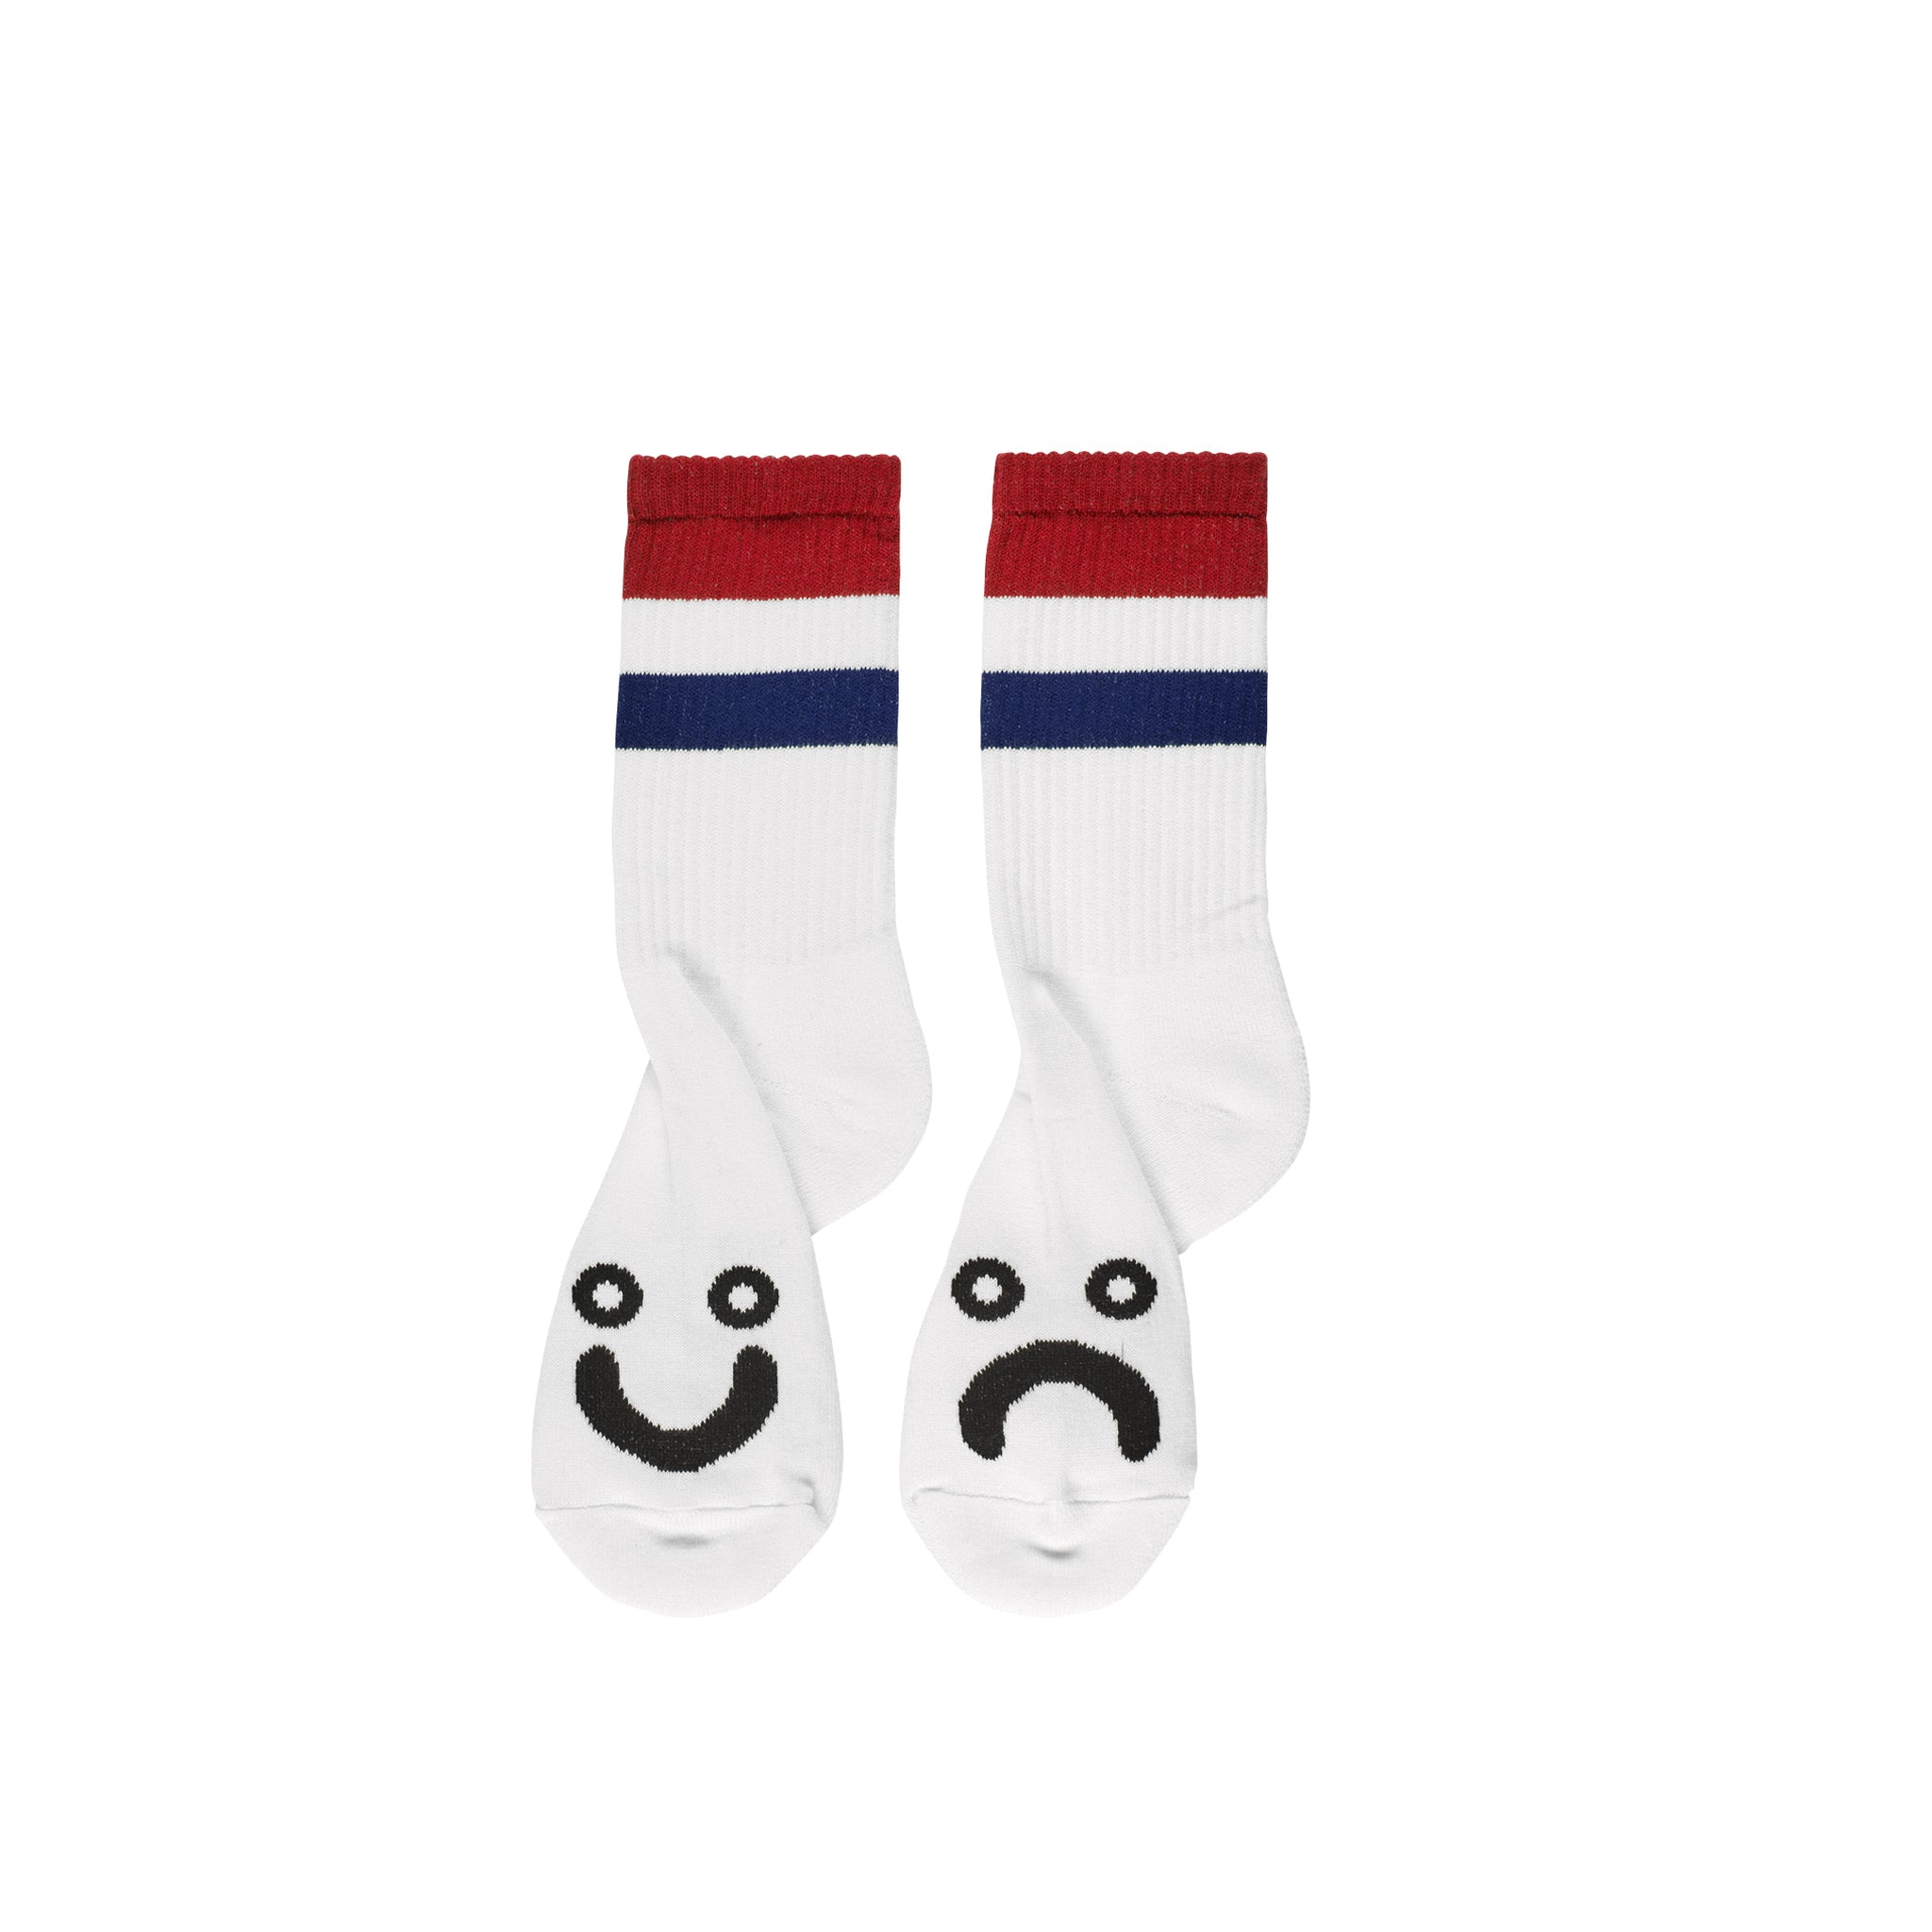 "POLAR - Happy Sad Socks Stripes ""Red/Blue"""